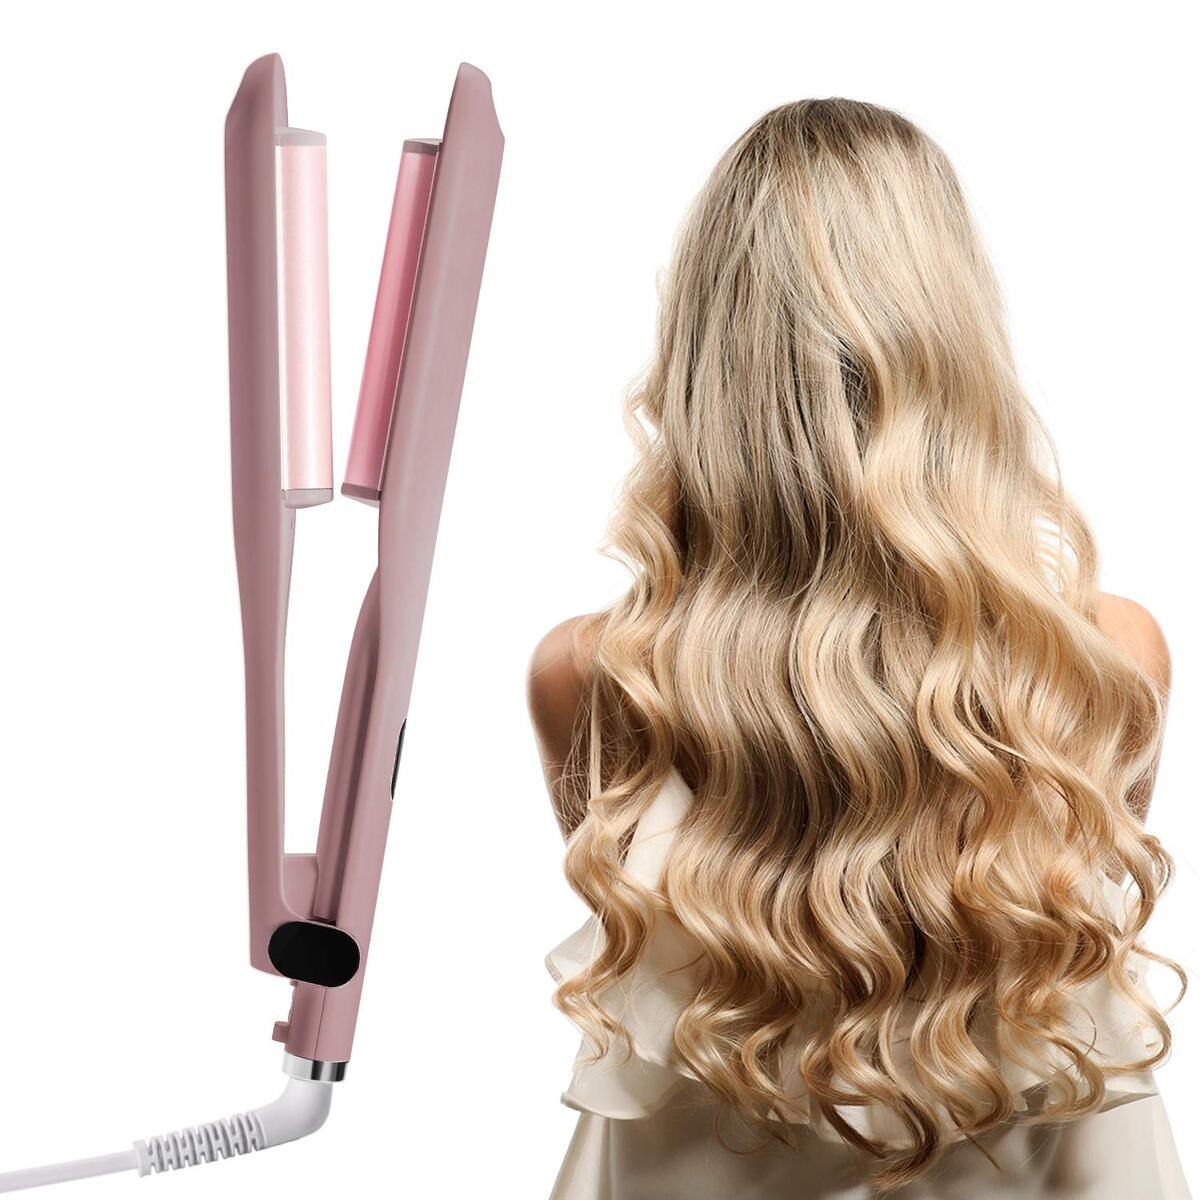 1 Inch Curling Iron 2 Barrel Beach Waves Curling Iron with LCD Temperature Display 360°F-410°F Ceramic Tourmaline Dual Voltage Professional Beachwaver Curling Wand (Pink)